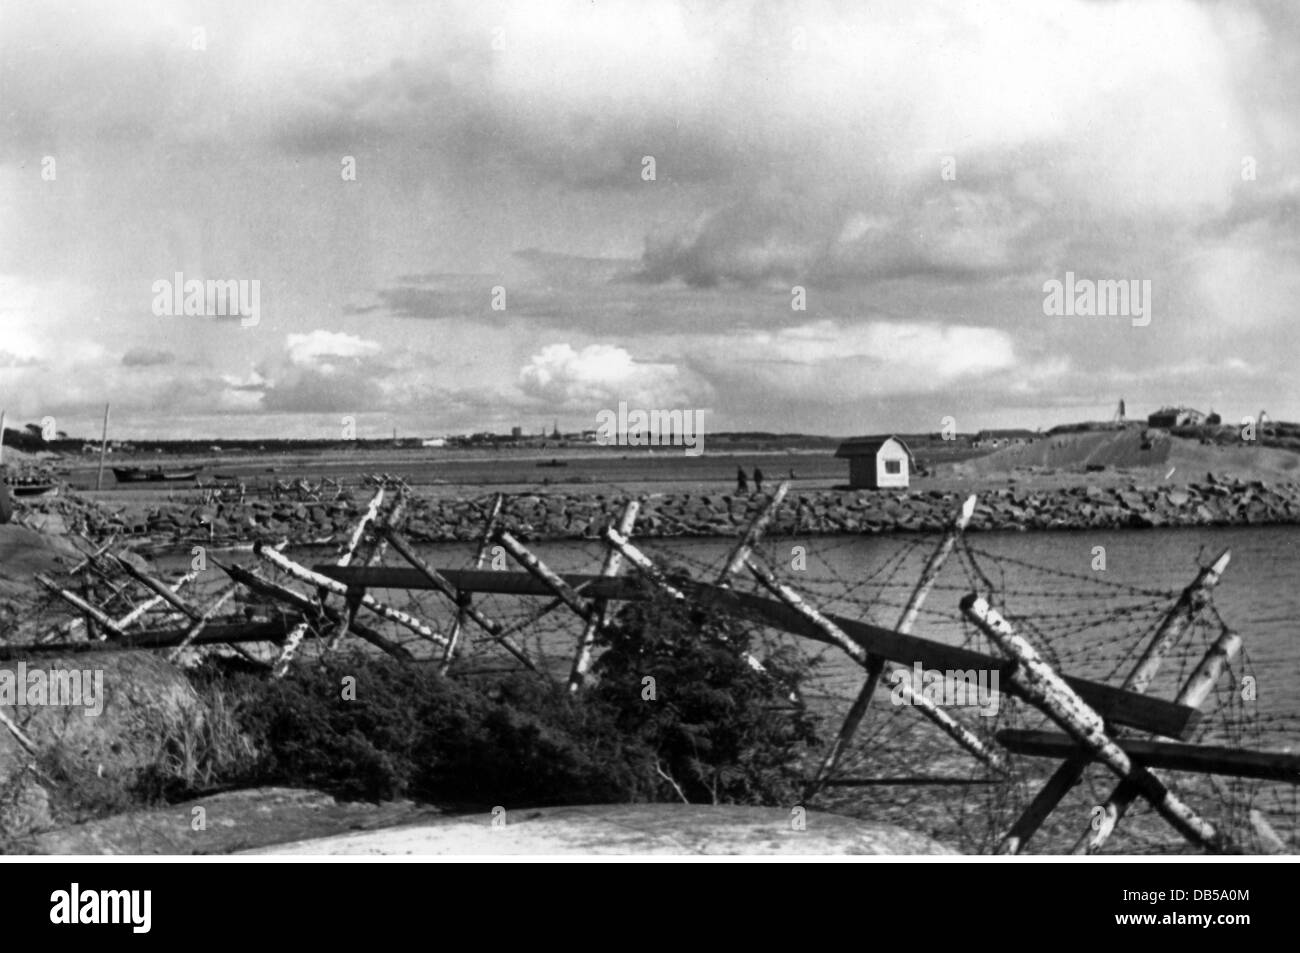 events, Second World War / WWII, Greece, Balkans Campaign 1941, barbed wire entanglement at the coast, April / May - Stock Image